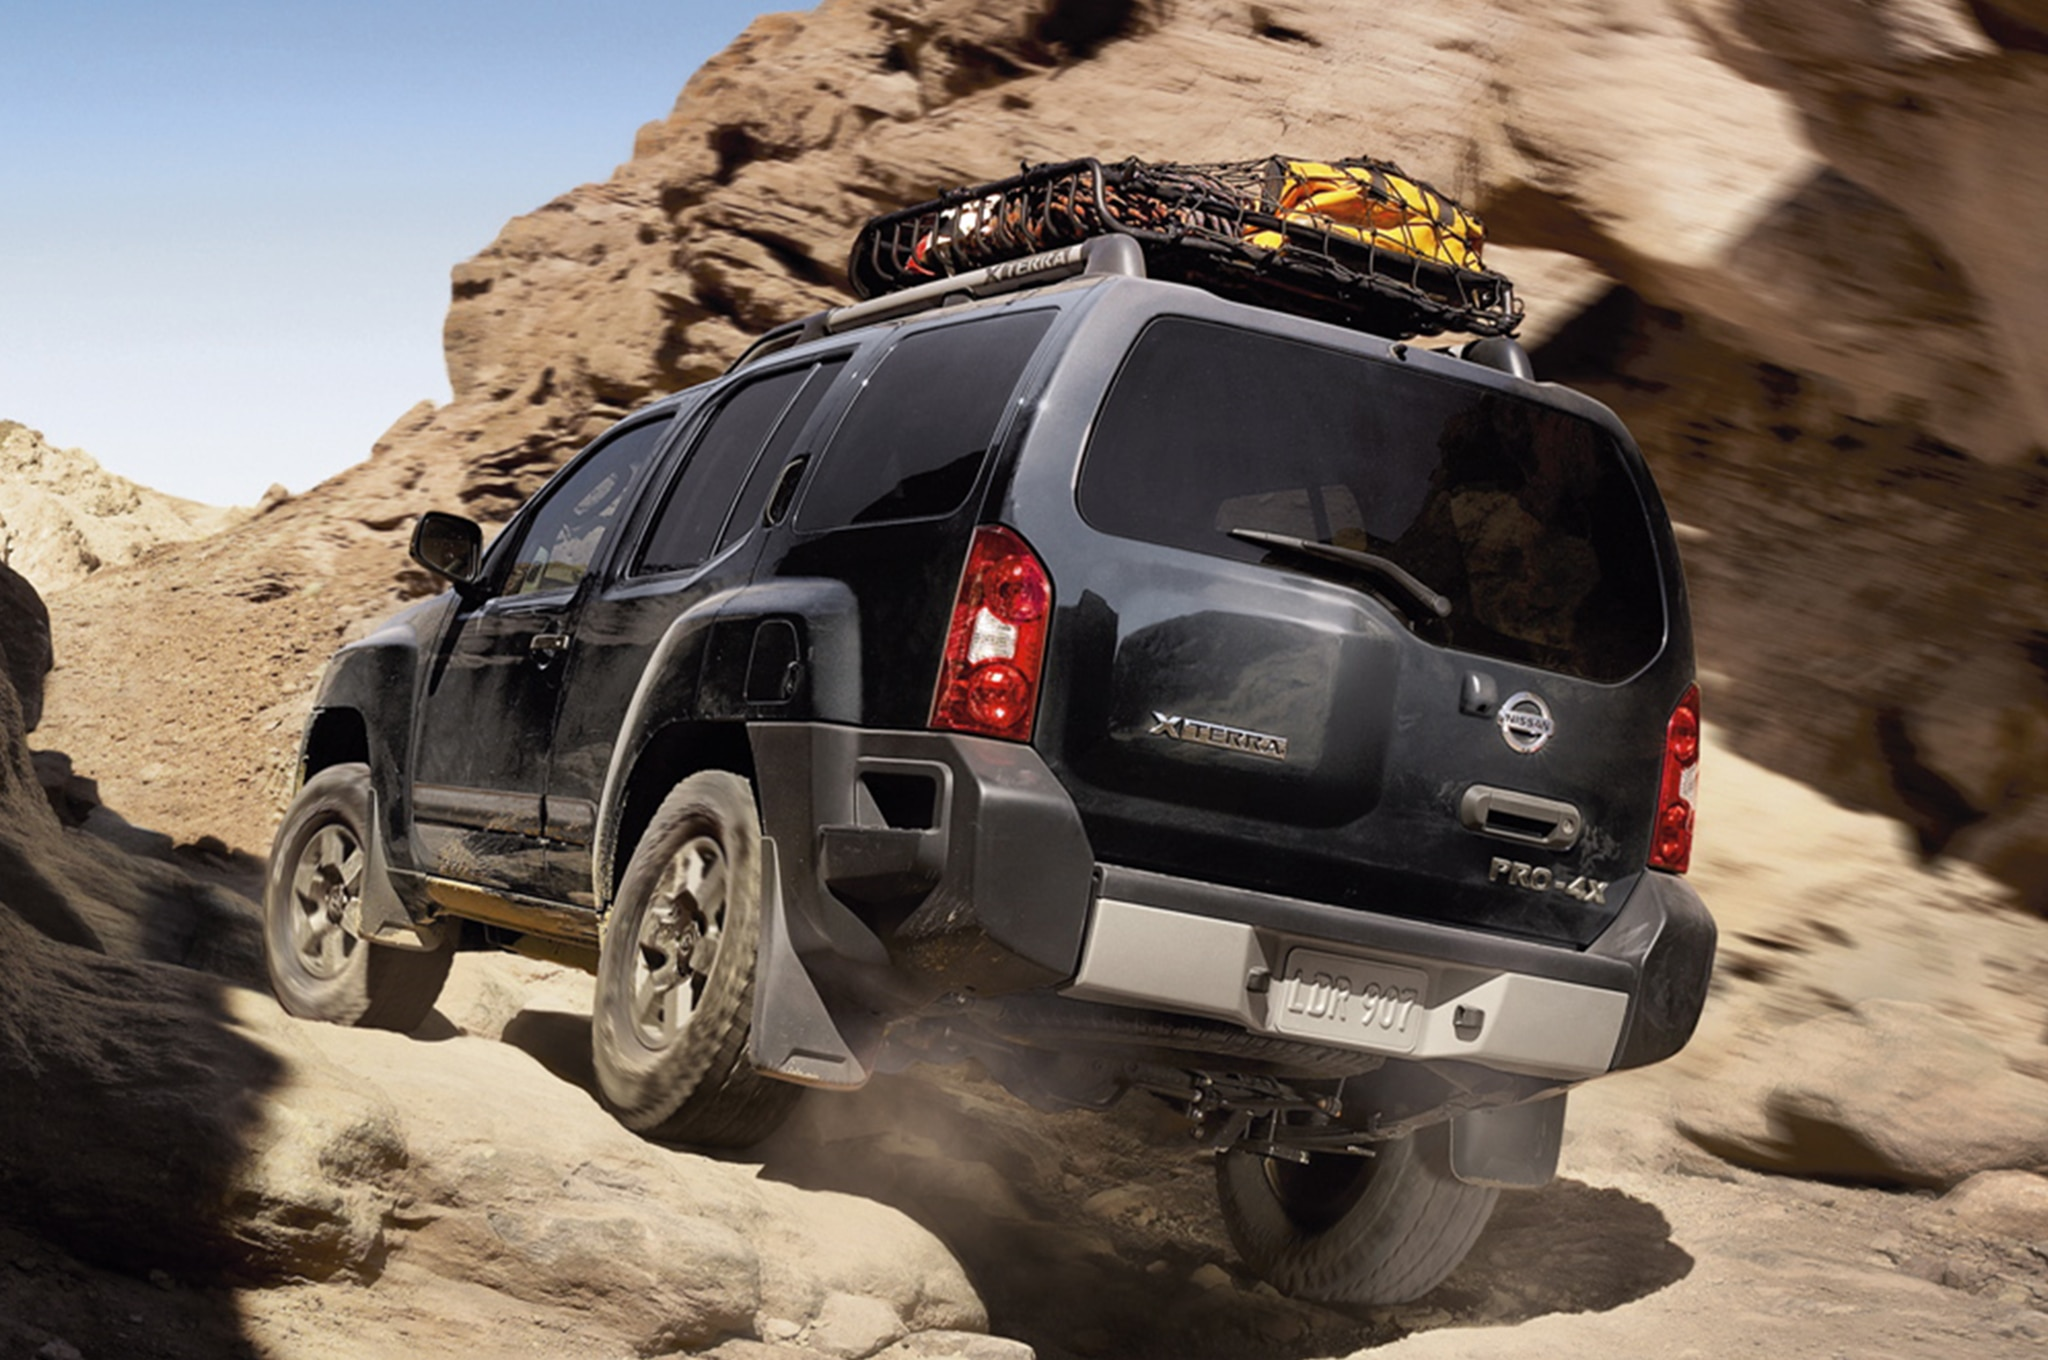 2015 nissan frontier xterra to cost 18850 and 24520 respectively new standard features for the 2015 nissan frontier vanachro Image collections